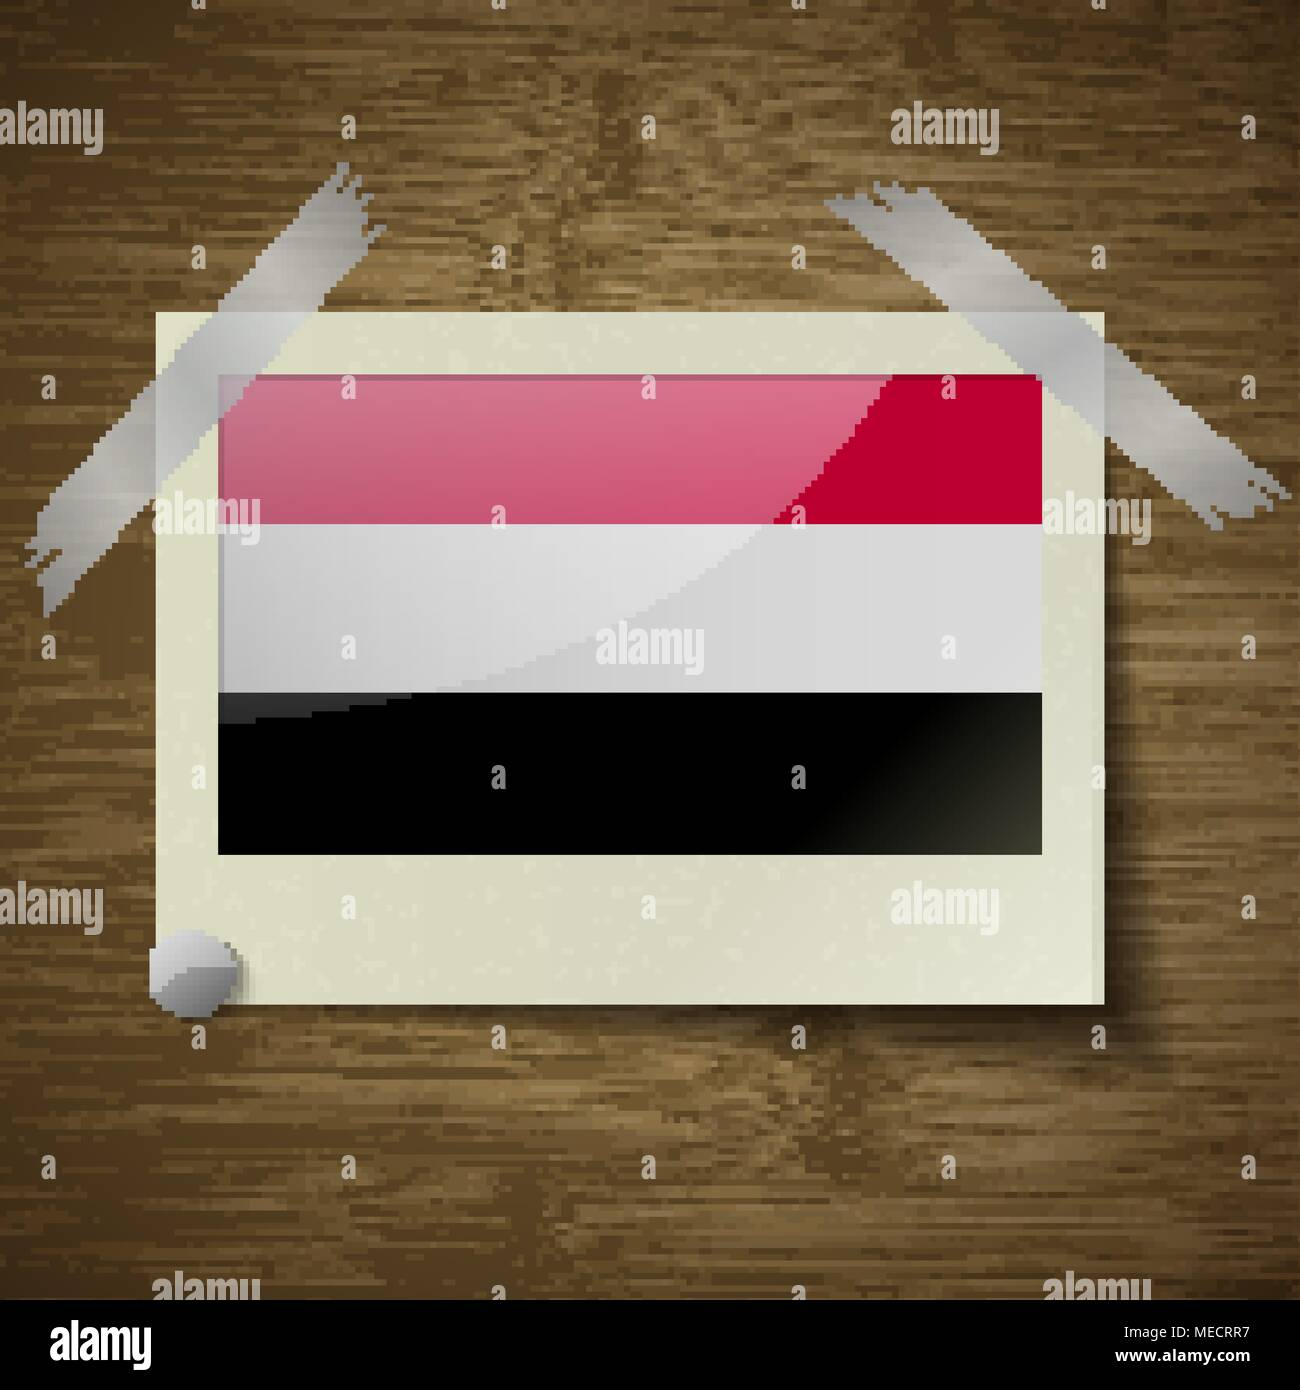 Flags of Yemen at frame on wooden texture. Vector illustration - Stock Vector